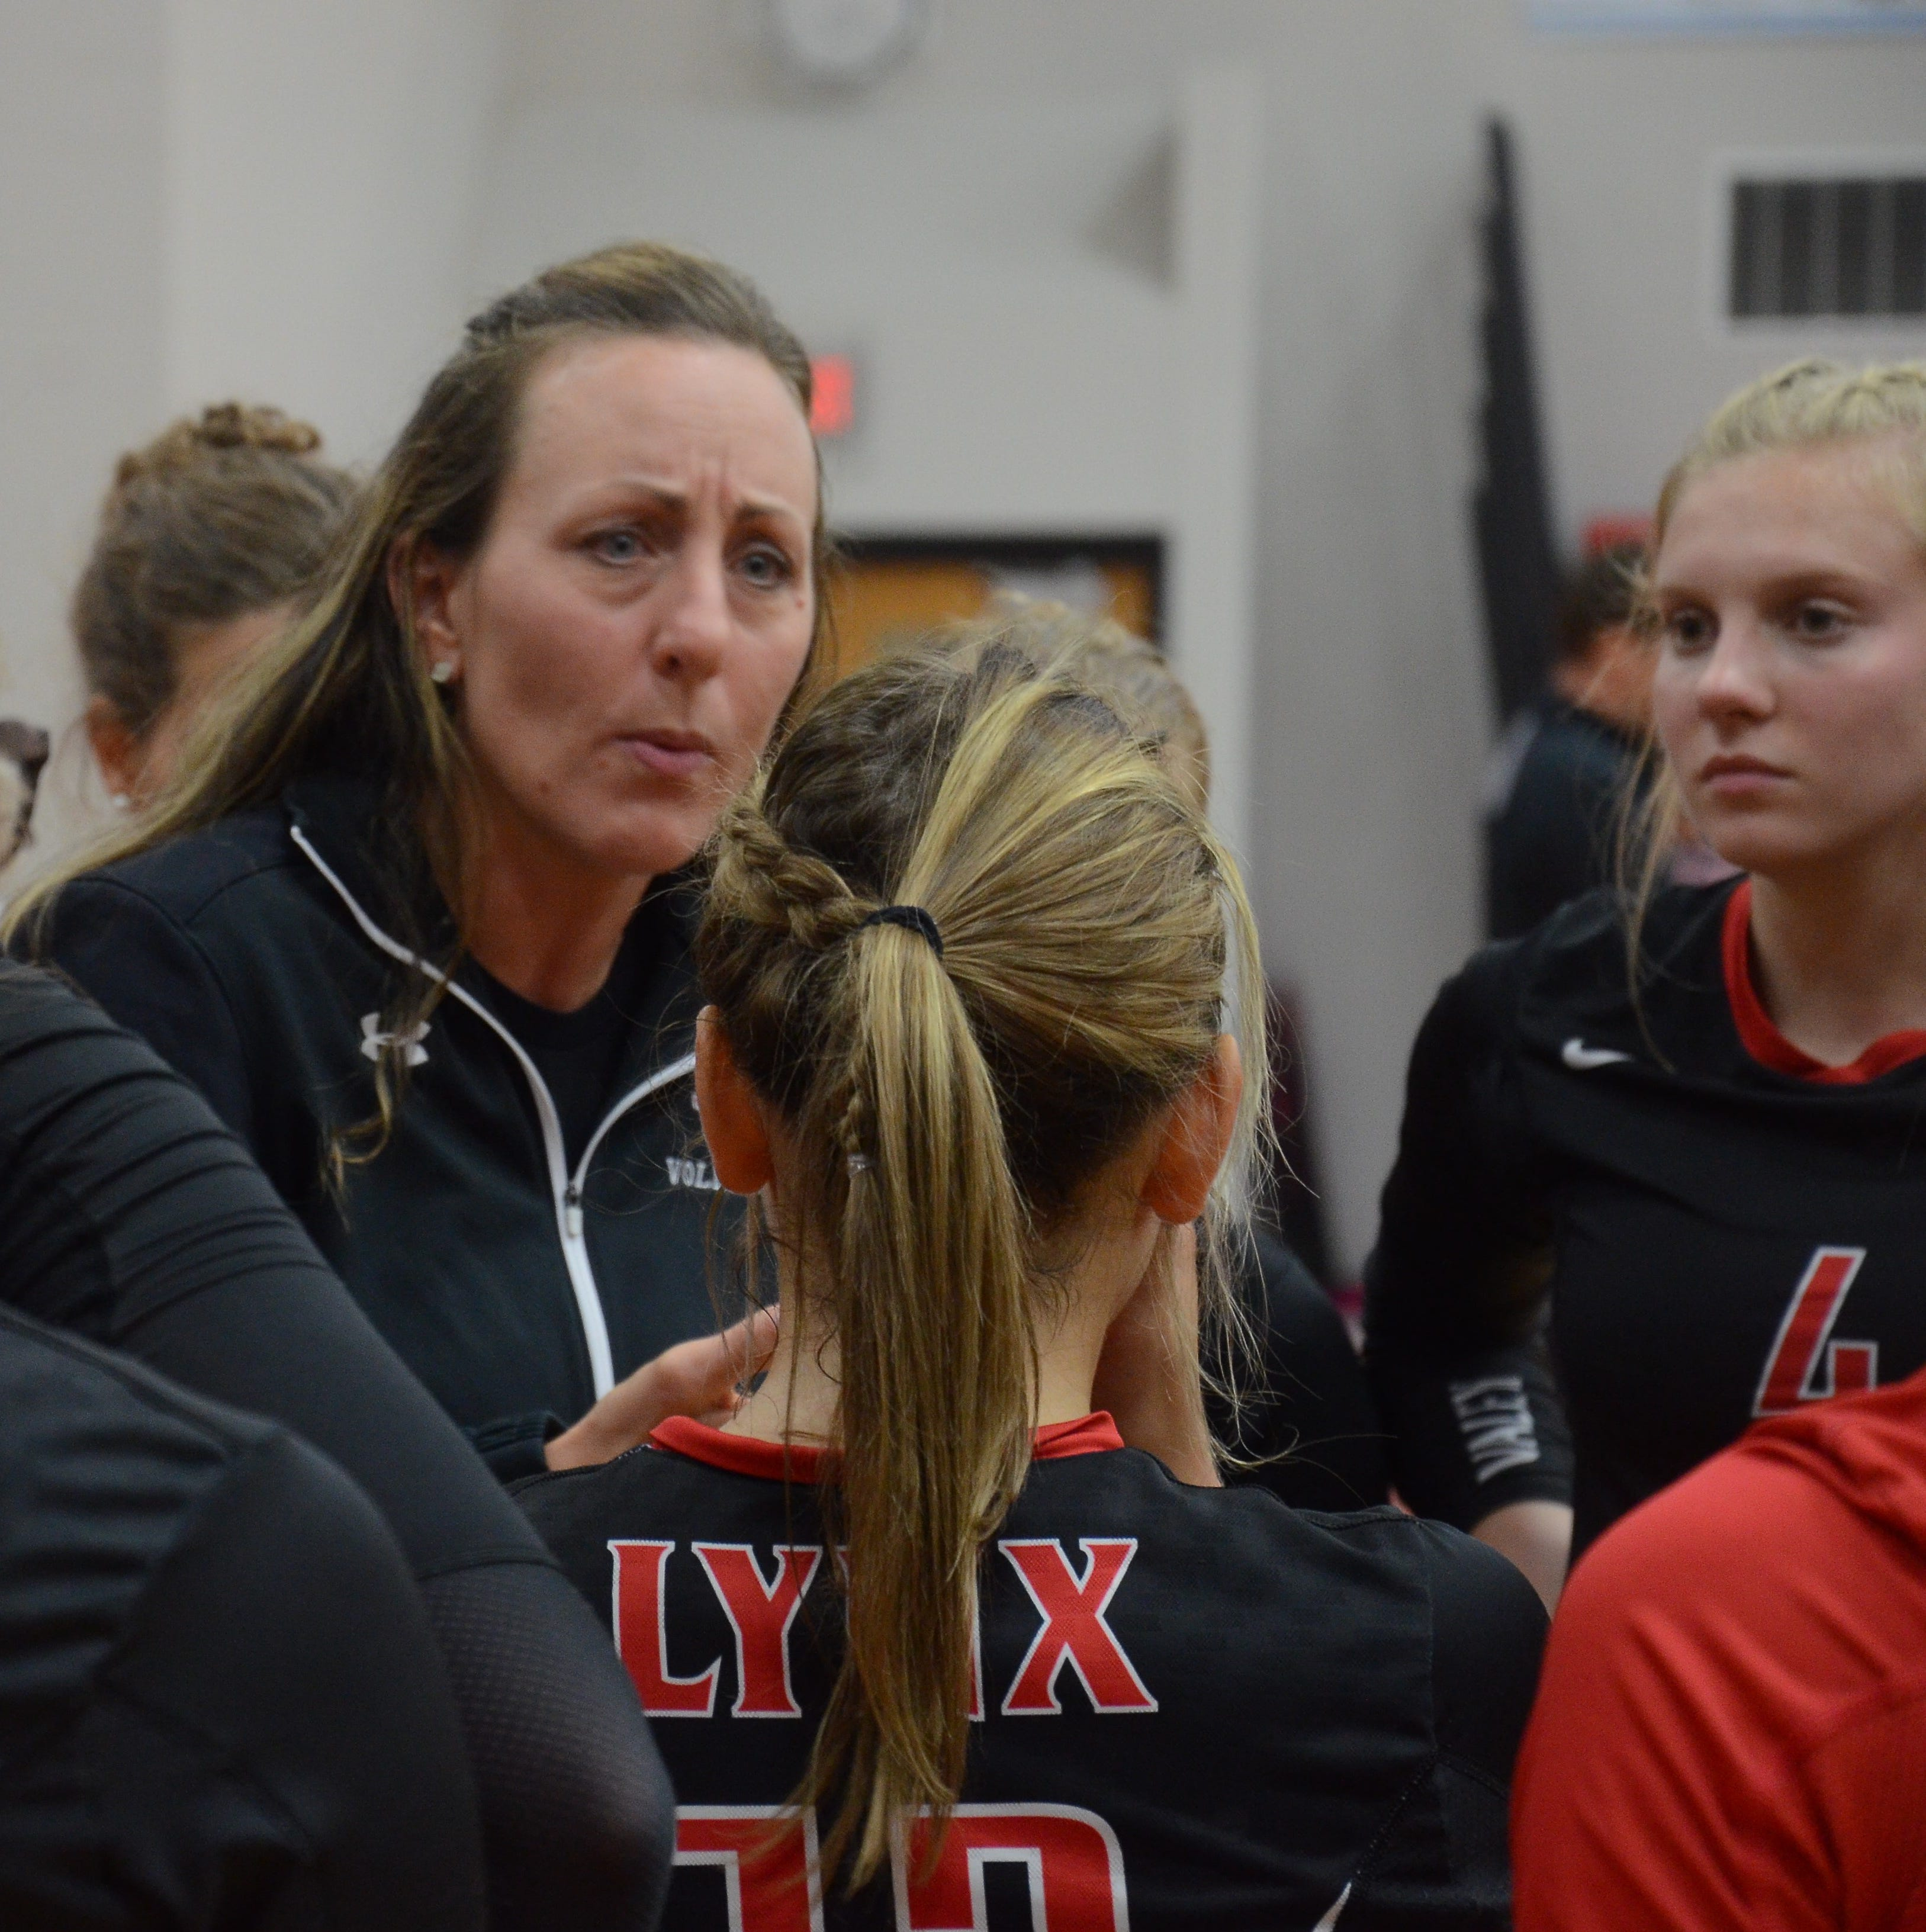 Lynx volleyball program on the rise after rough two-year stretch